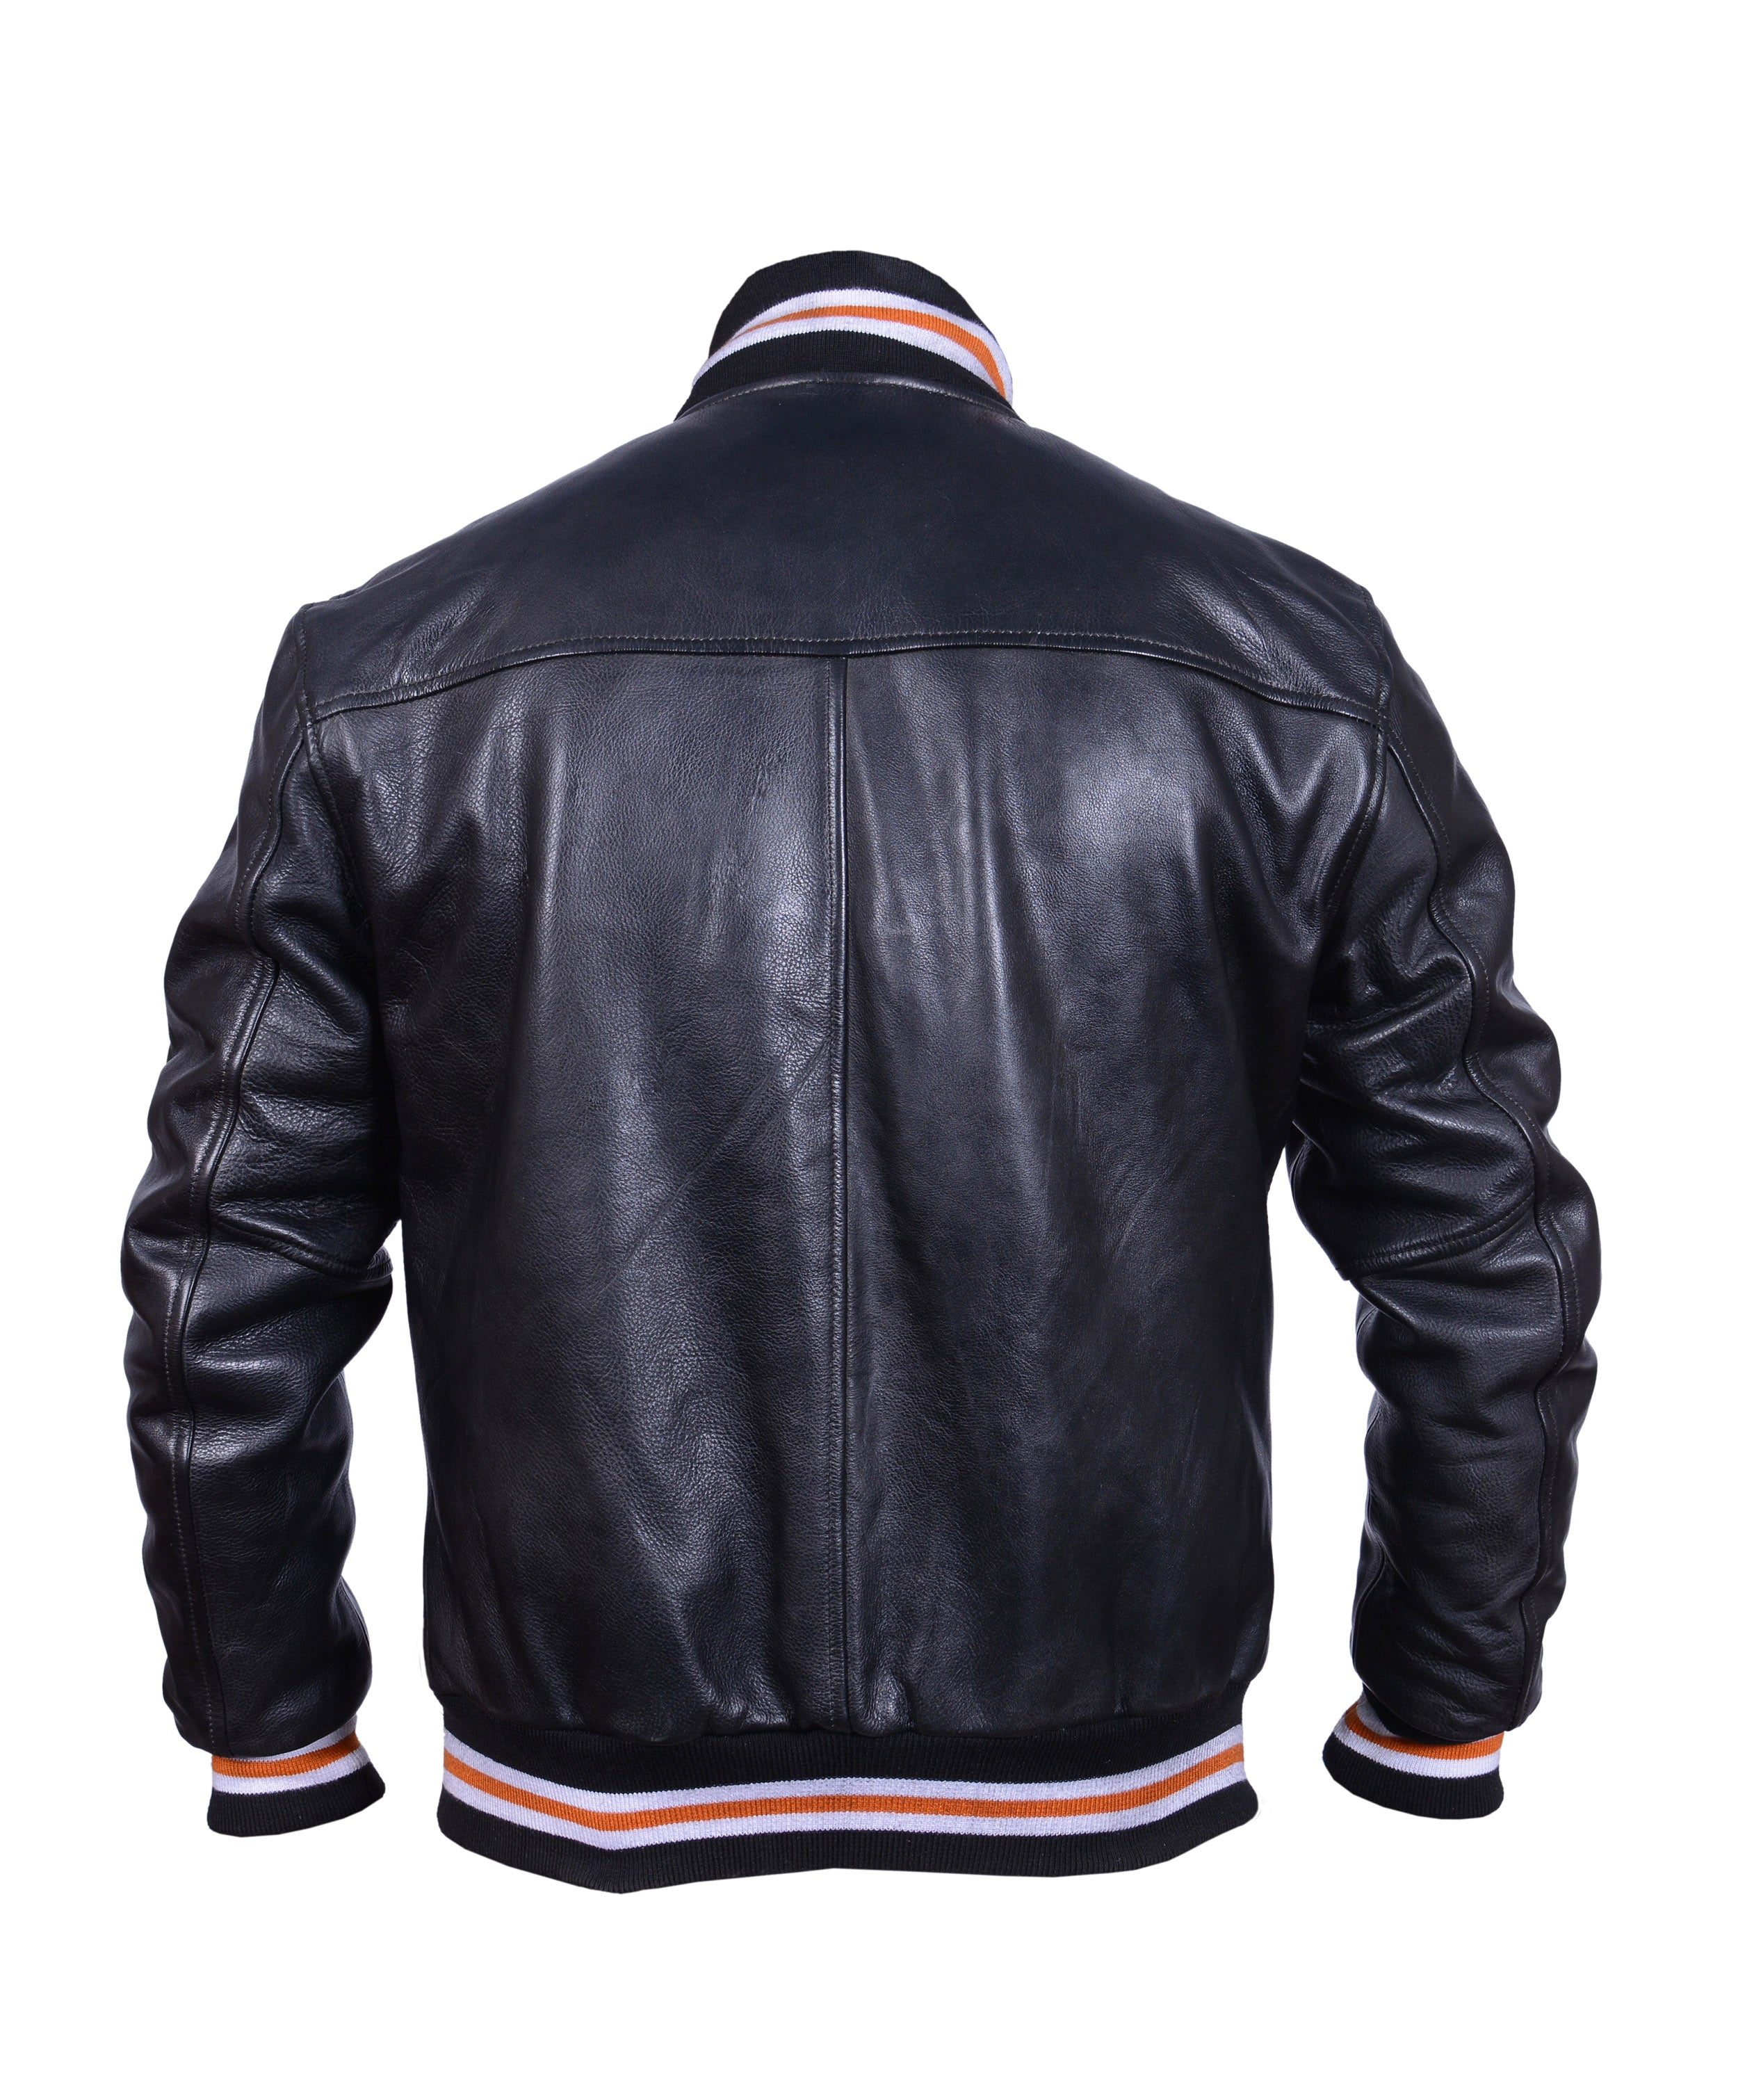 Diapo Leather Black Men's Cowhide Varsity Vegetable Tanned Leather Jacket